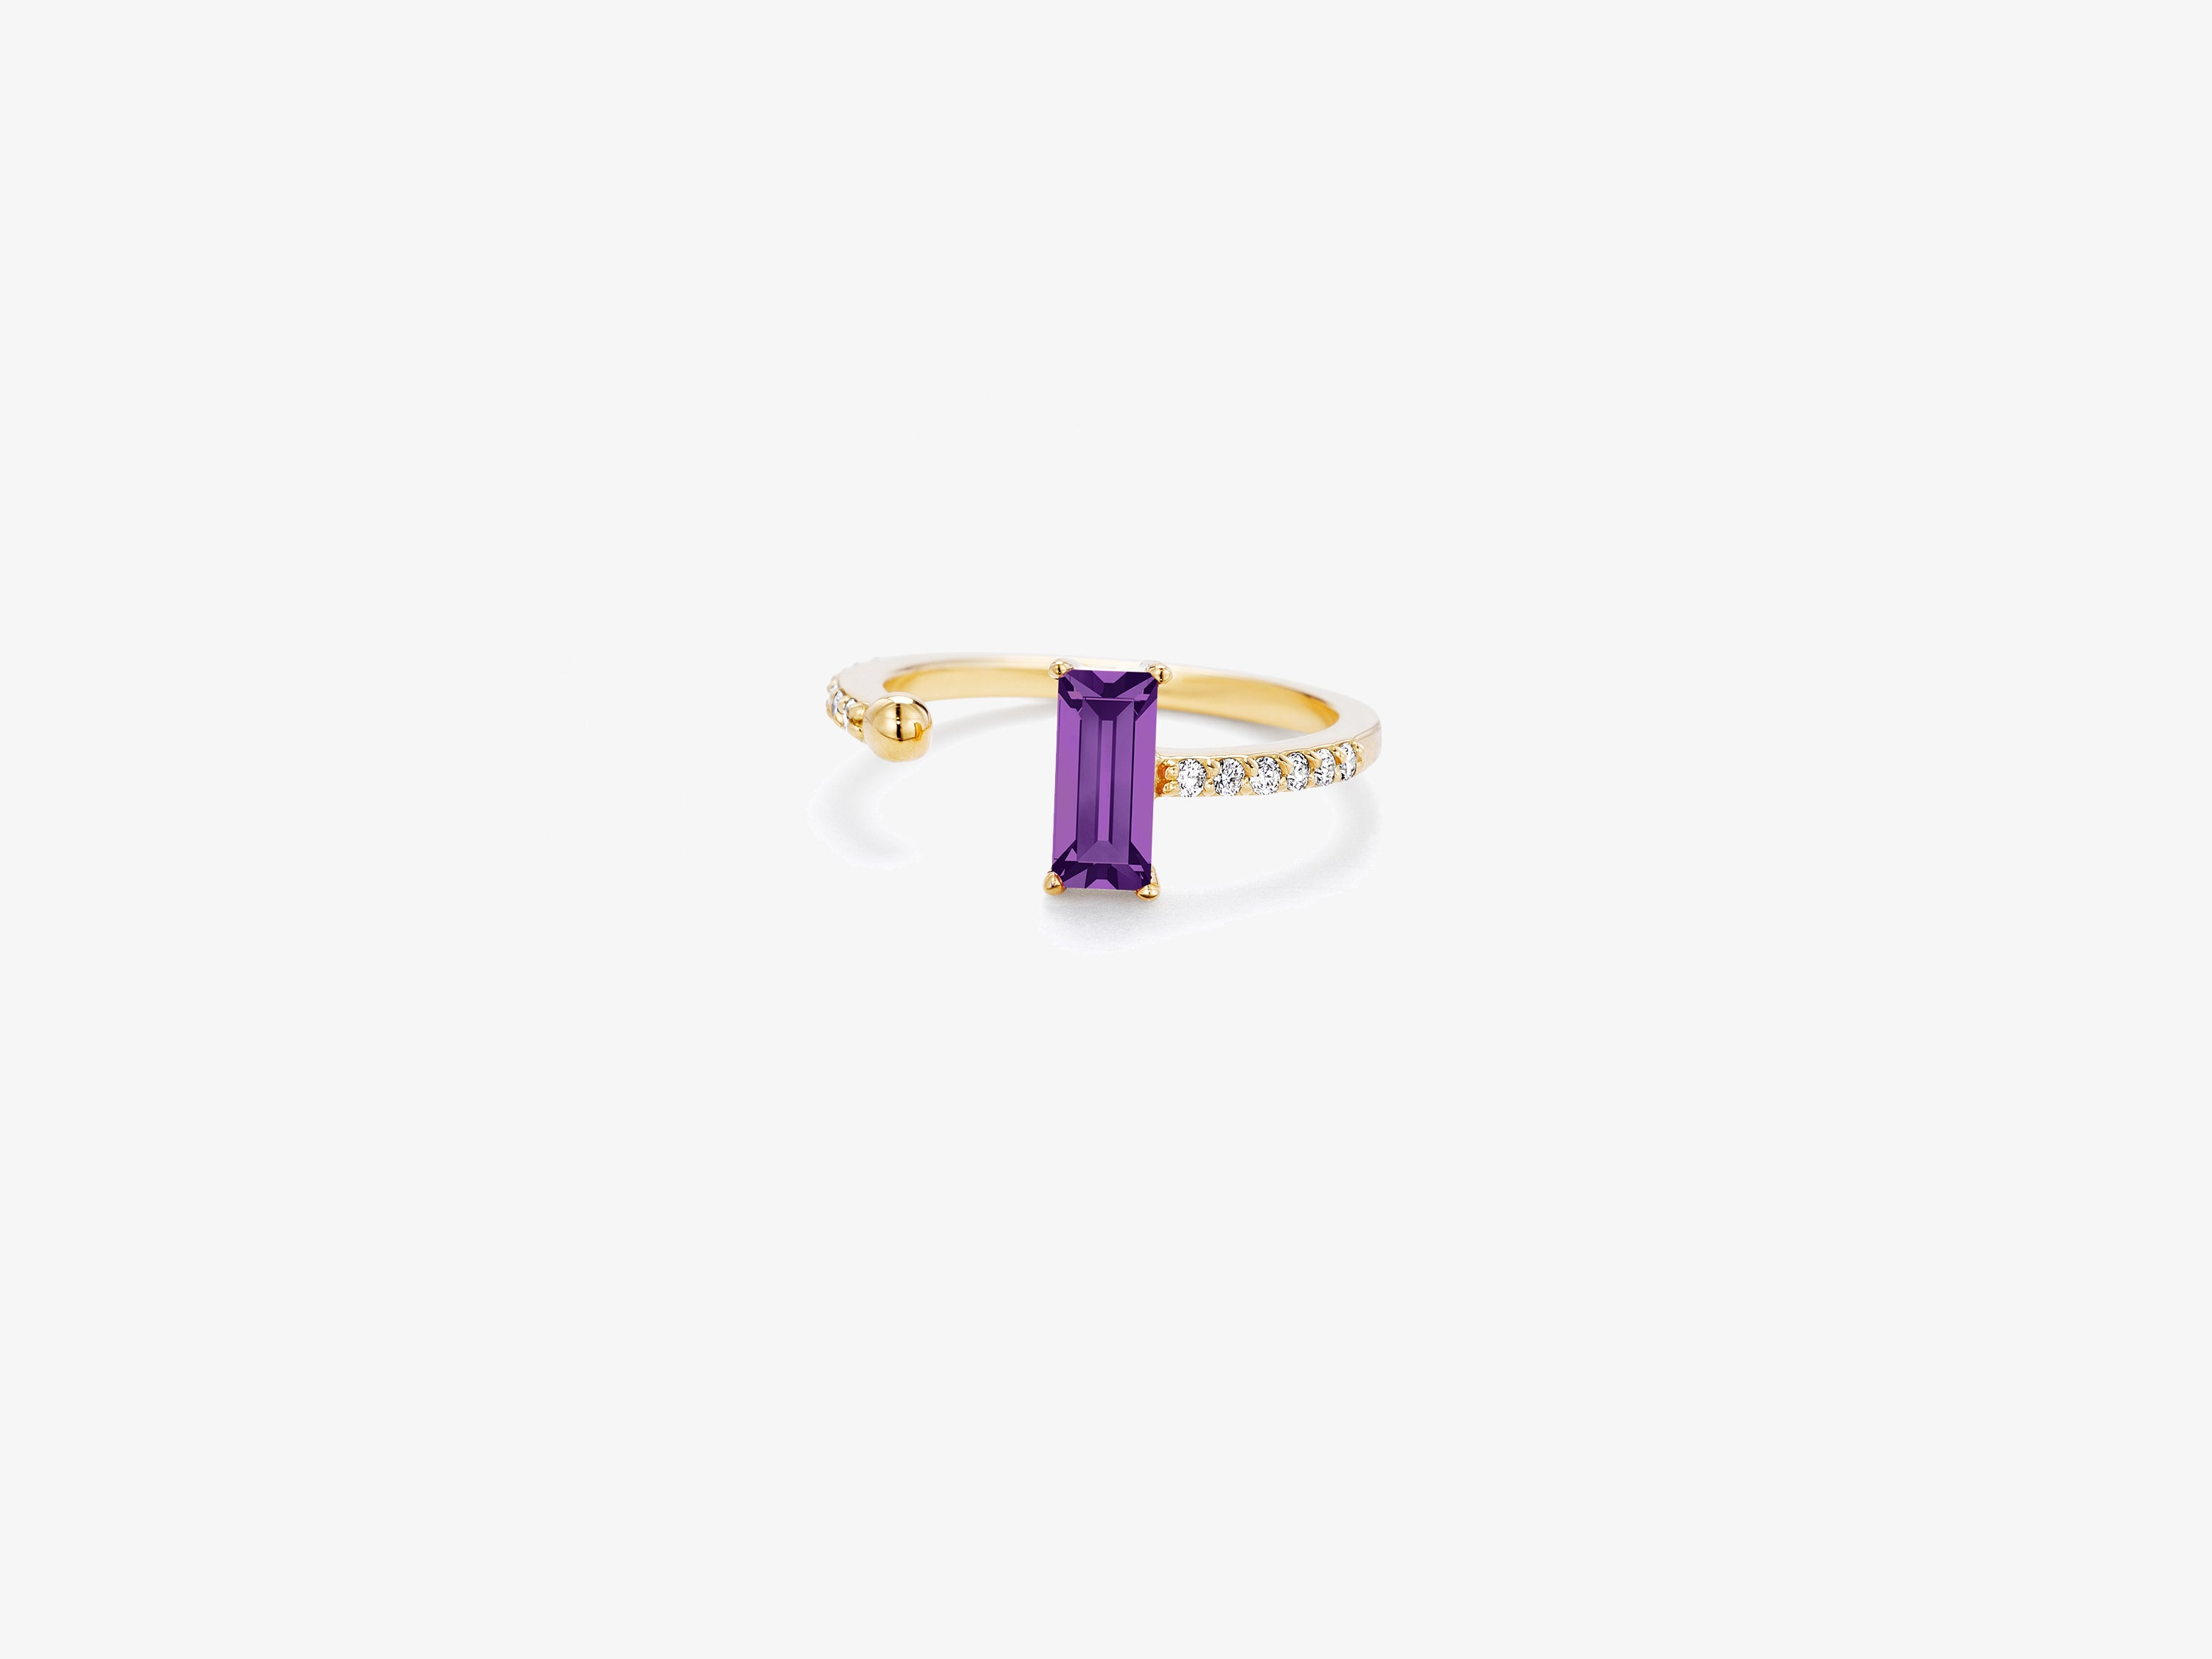 Asymmetrical Diamond Pave Ring with Single Baguette Gemstone Detail